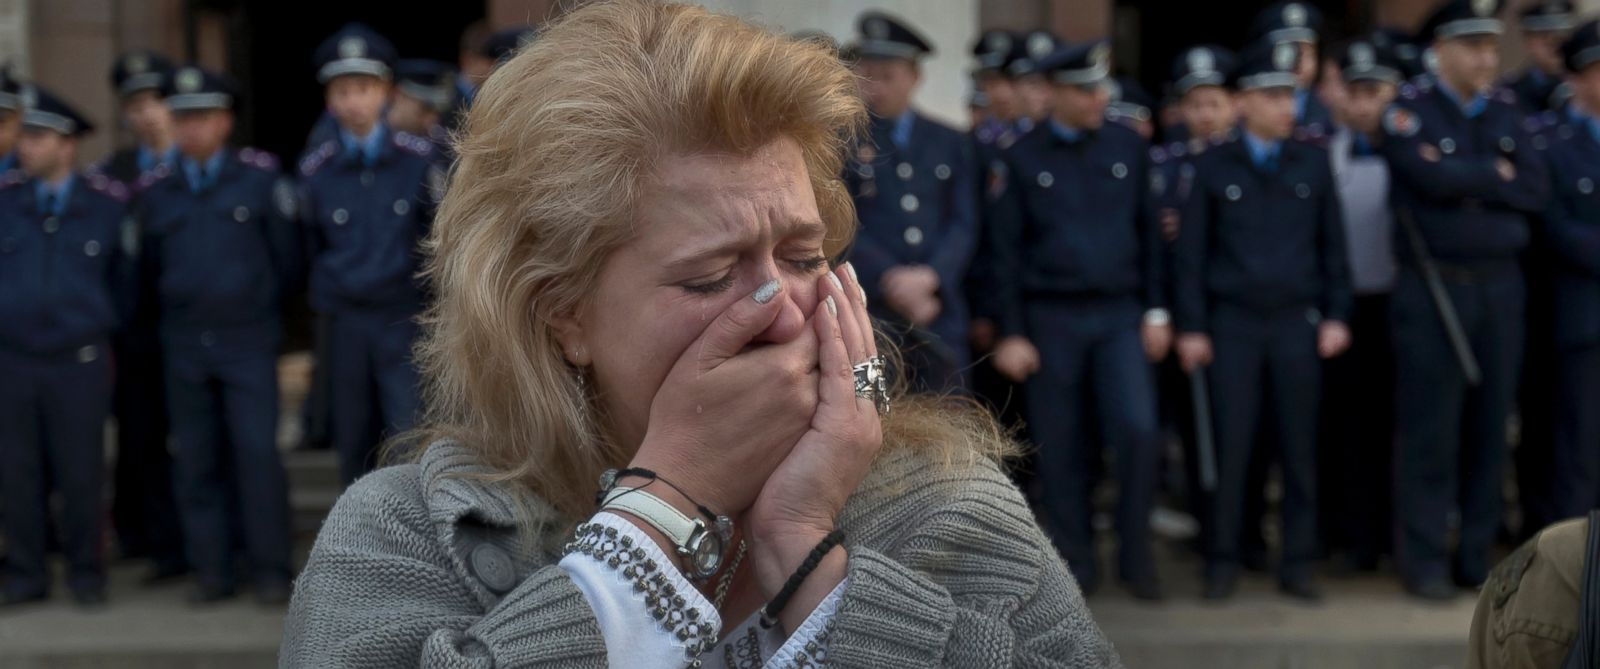 PHOTO: A woman cries back dropped by police troops guarding the burnt trade union building in Odessa, Ukraine, May 3, 2014, where more than 30 people died trying to escape during clashes the day before.